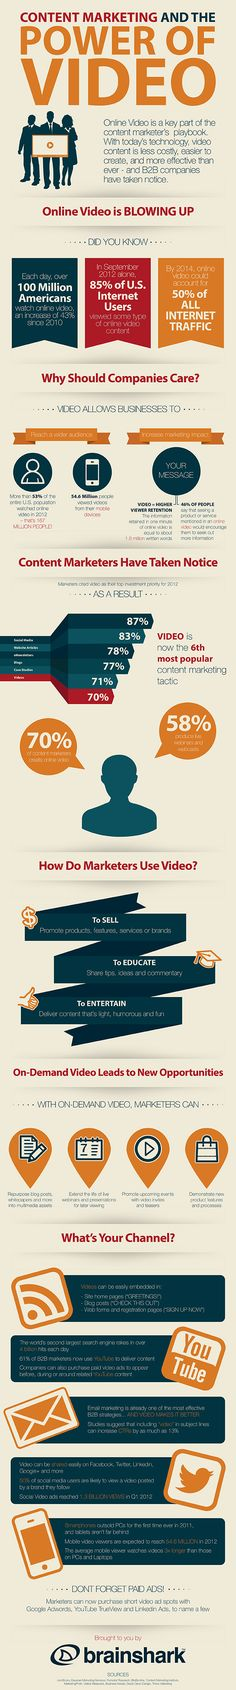 """Reasons to Use Video in Marketing [Infographic] Content marketing & the power of video > best advice for video ever received """"keep it under 3 mins"""" ;~)Content marketing & the power of video > best advice for video ever received """"keep it under 3 mins"""" ; Inbound Marketing, Marketing Digital, Marketing Trends, Marketing En Internet, Mobile Marketing, Business Marketing, Content Marketing, Online Marketing, Social Media Marketing"""